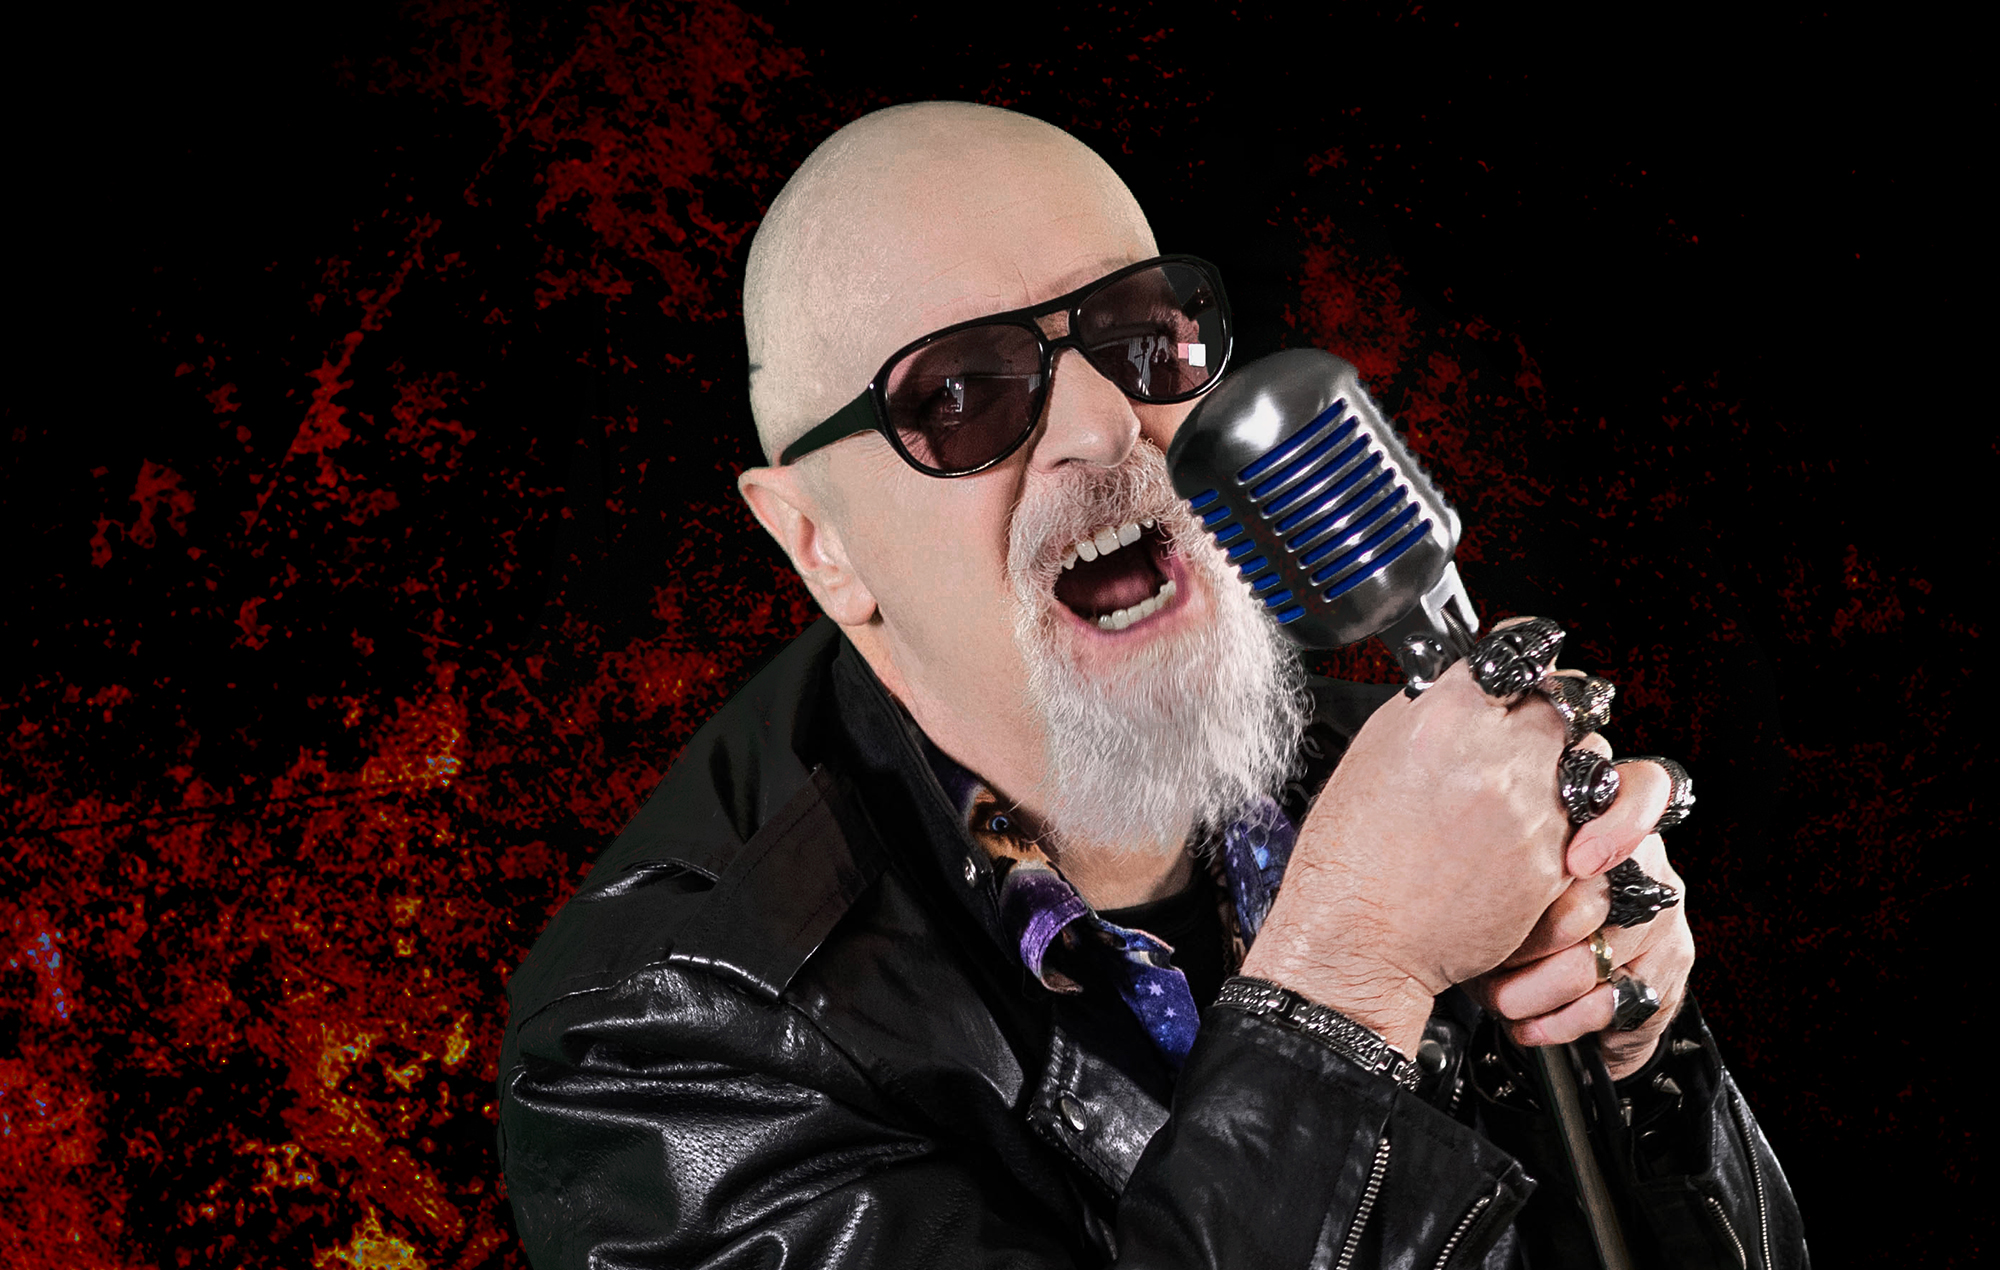 Judas Priest's Rob Halford: 'The metal community has always been inclusive, yet we've been kicked around like a football over the years'